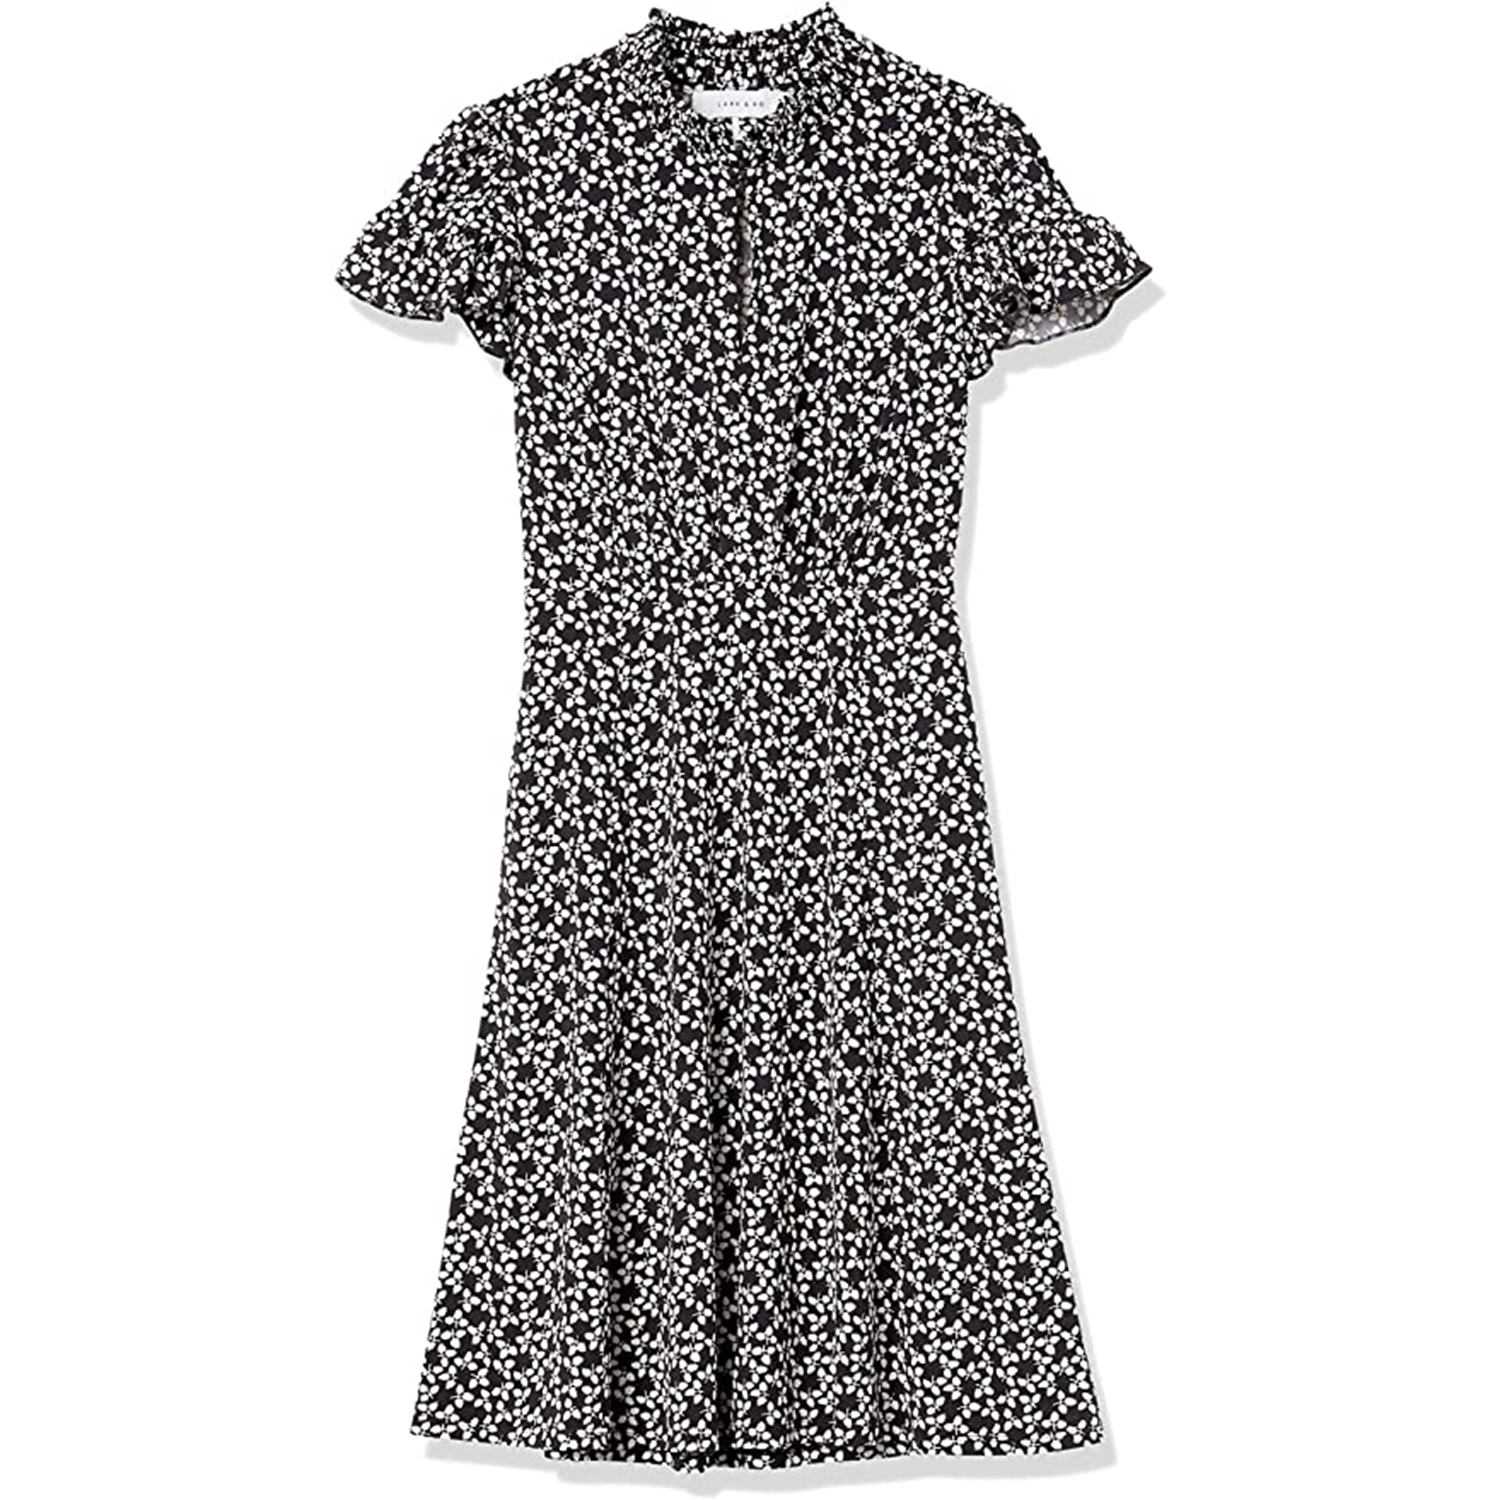 Amazon Marked Down Tons of Dresses 2021